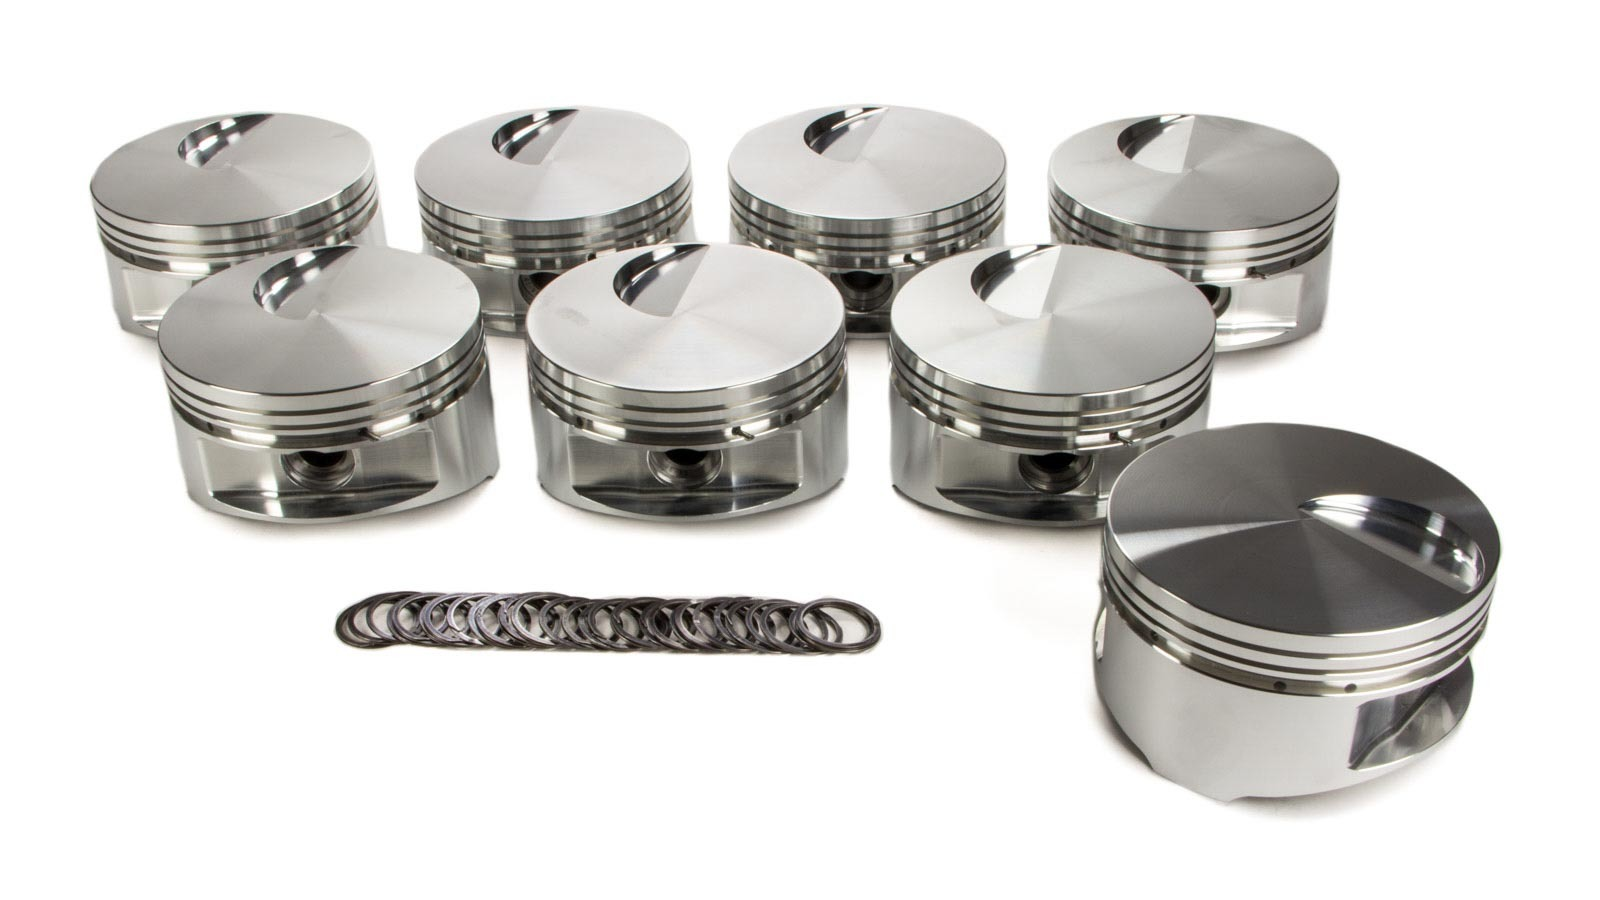 JE Pistons 170878 Piston, 460 Flat Top, Forged, 4.440 in Bore, 1/16 x 1/16 x 3/16 in Ring Grooves, Minus 3.0 cc, Big Block Ford, Set of 8